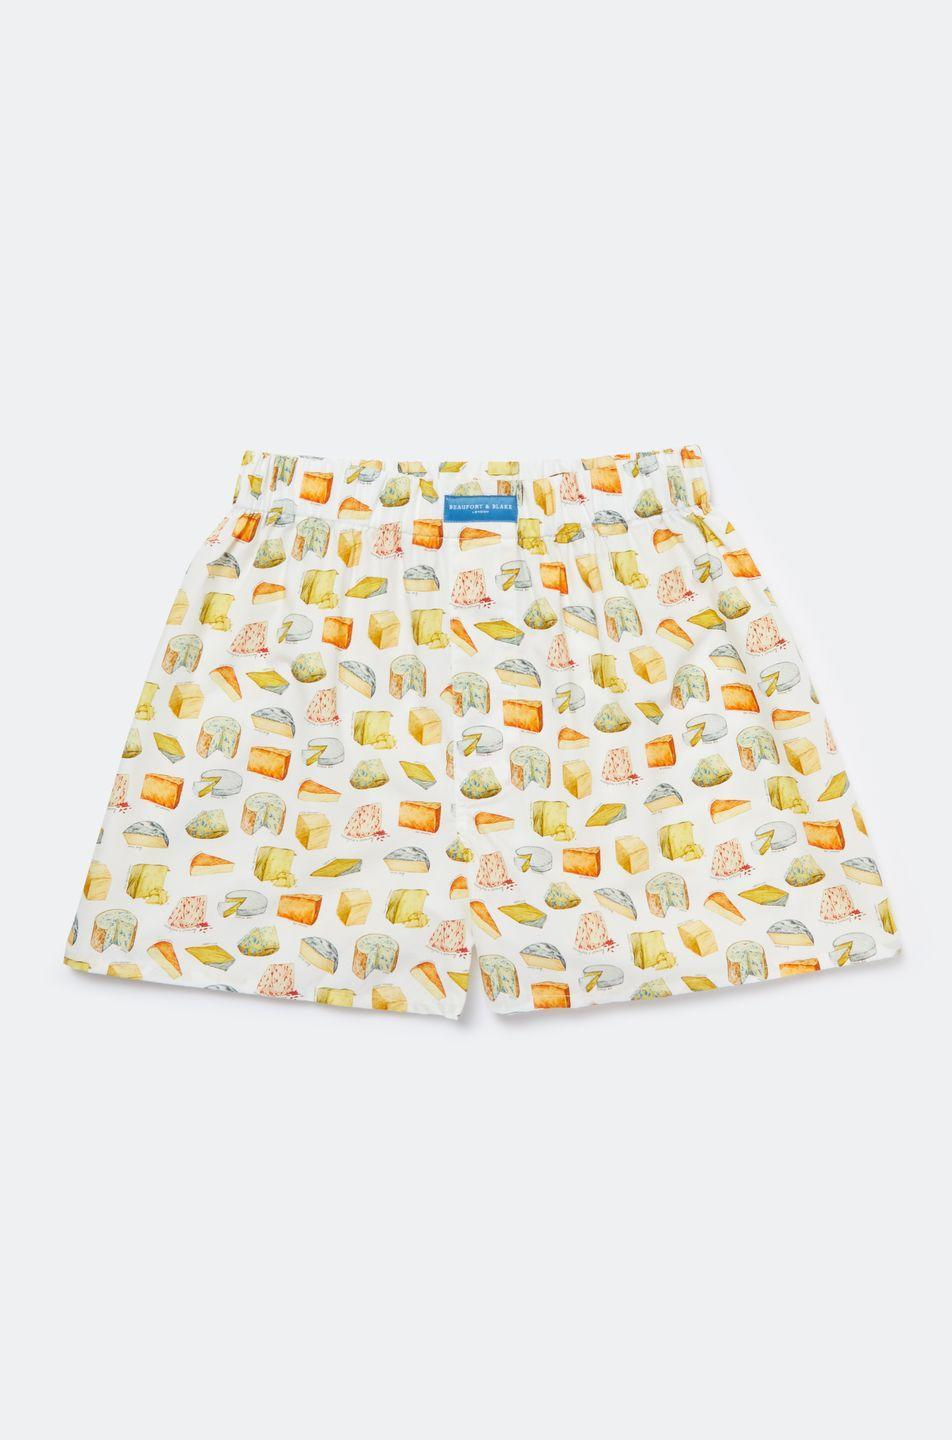 """<p>Featuring a comically cheesy hand-drawn print from Beaufort & Blake, these smile-worthy boxers are made from super-soft, 100 per cent cotton poplin. With a comfortable tunnel waistband and relaxed fit, they make a great stocking filler for him. AD</p><p>£25 for a pair or £60 for three, <a href=""""http://www.beaufortandblake.com"""" rel=""""nofollow noopener"""" target=""""_blank"""" data-ylk=""""slk:Beaufort & Blake"""" class=""""link rapid-noclick-resp"""">Beaufort & Blake</a></p>"""